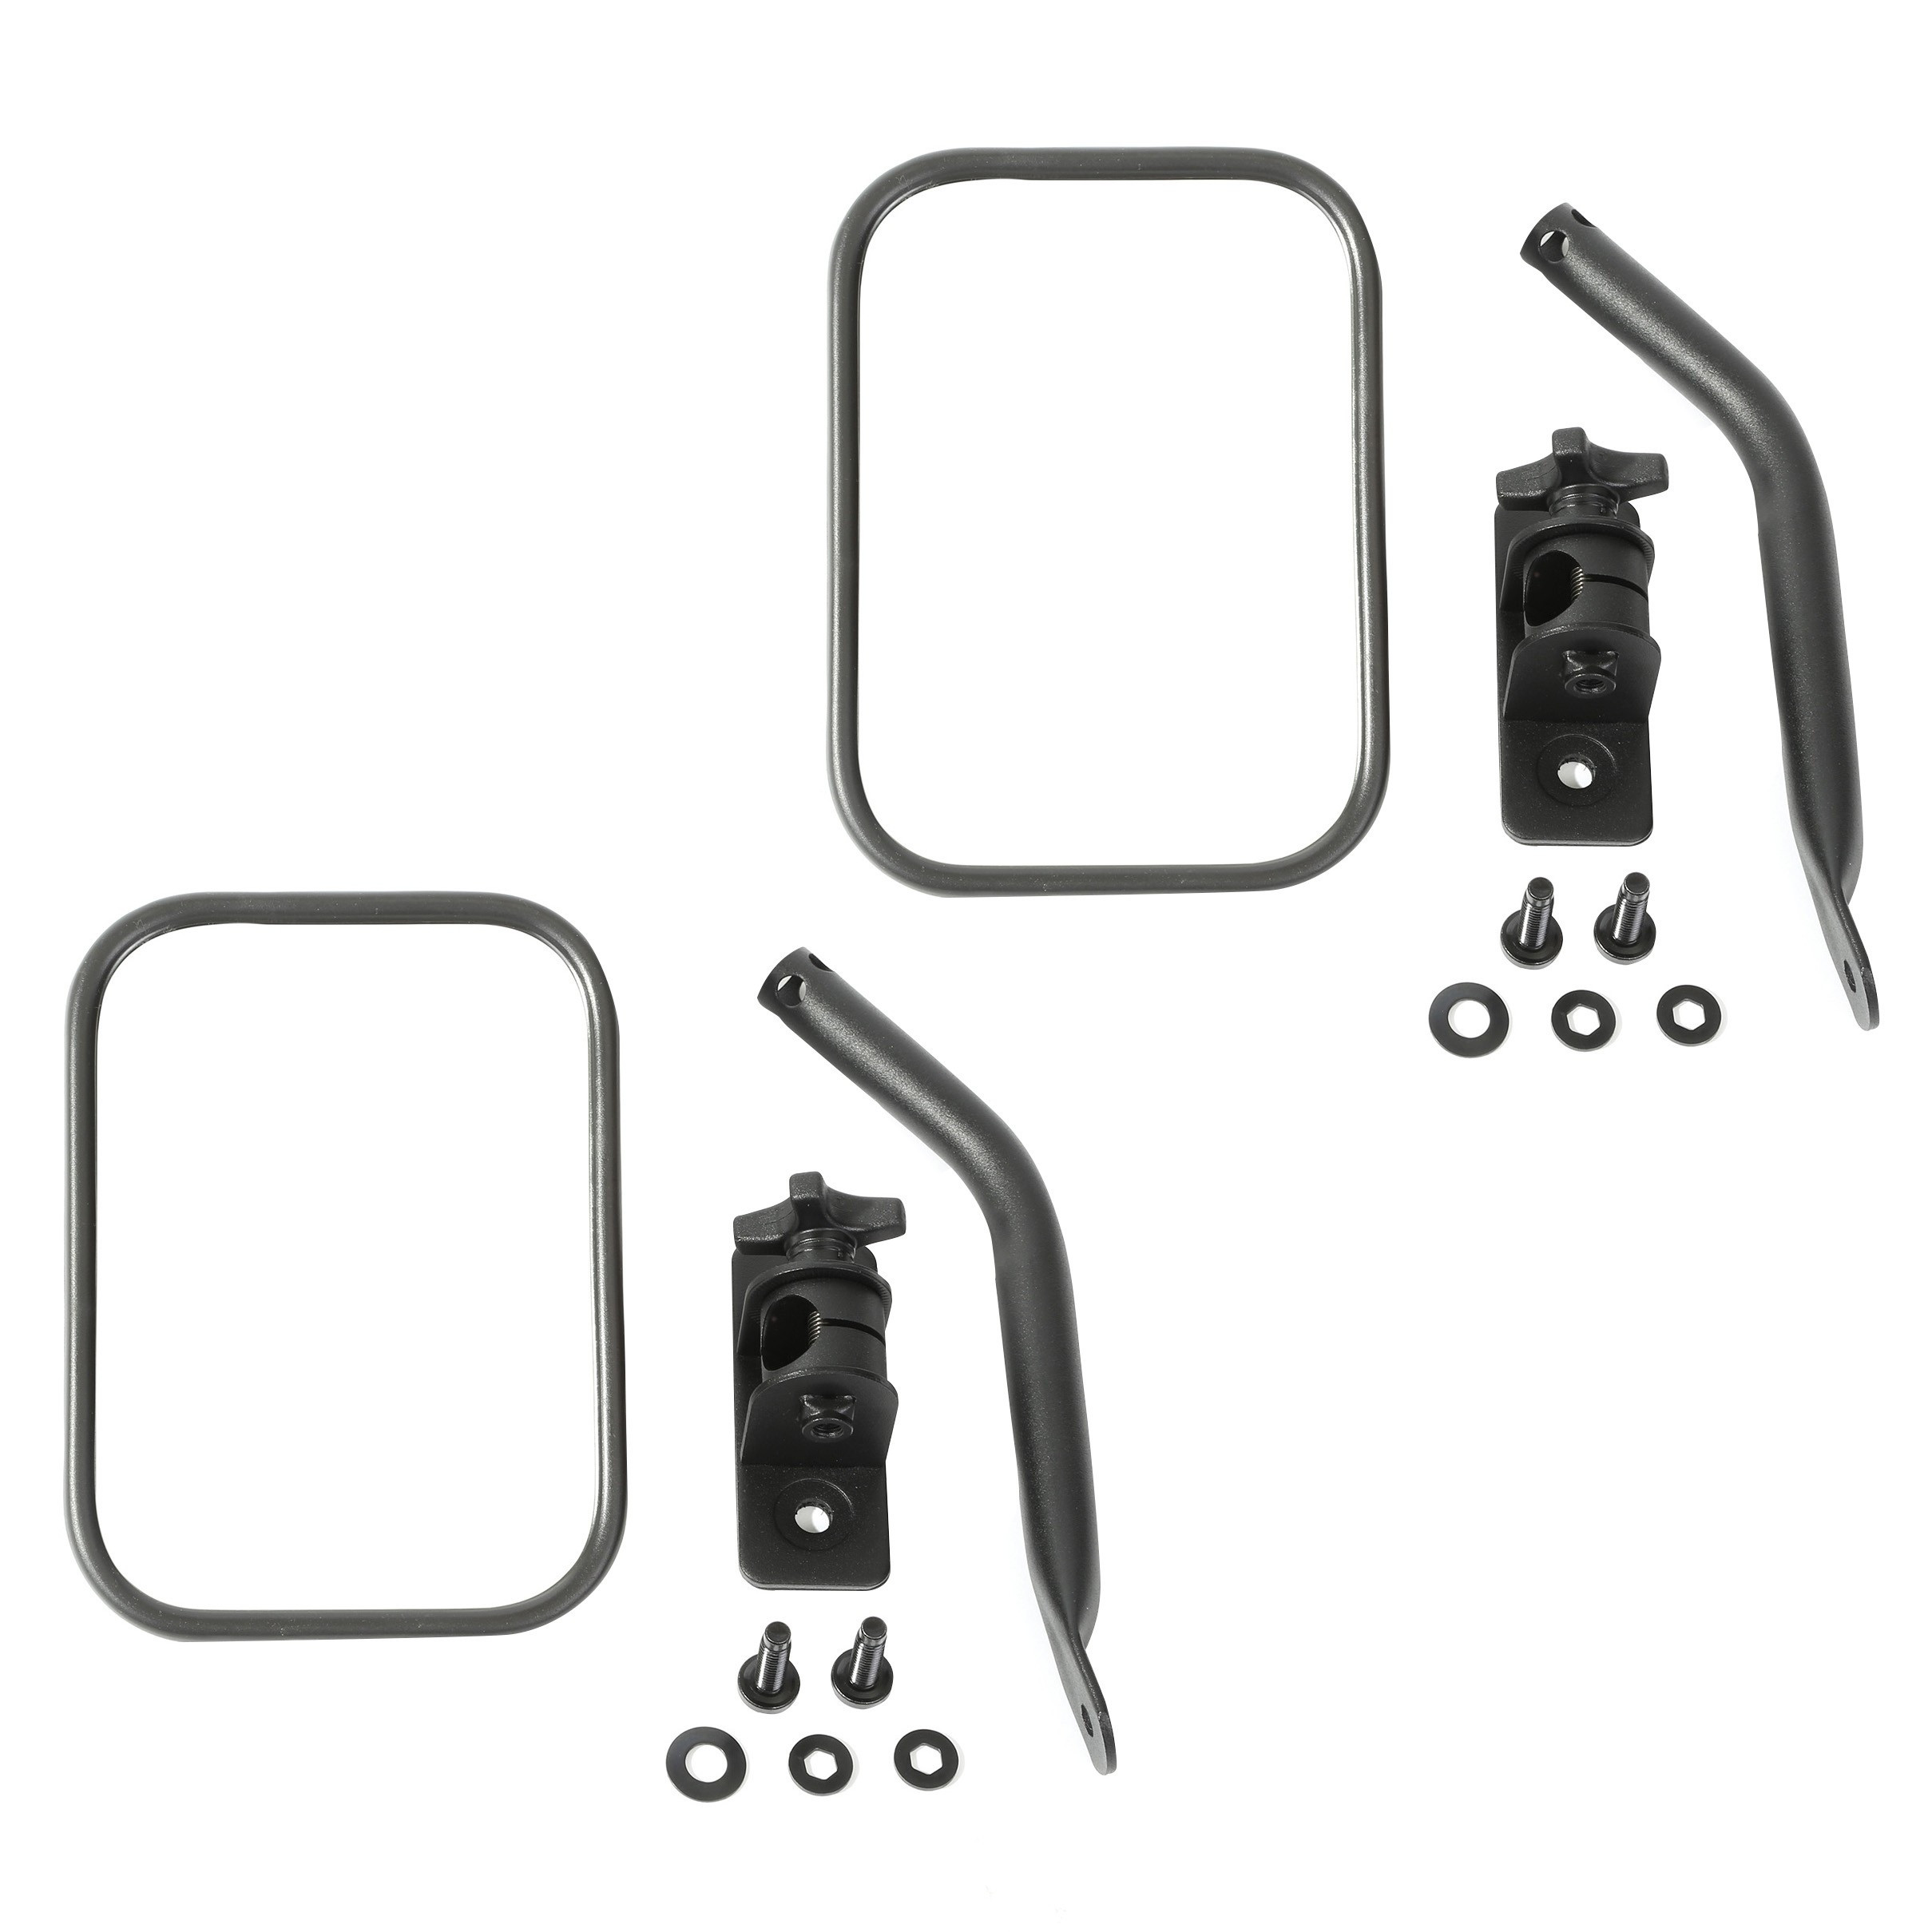 Rugged Ridge Quick Release RECTANGULAR Mirror Kit (Textured Black) For 1997+ Jeep Wrangler TJ, JK, TJ Unlimited & Wrangler Unlimited JK (Pair) 11025.18